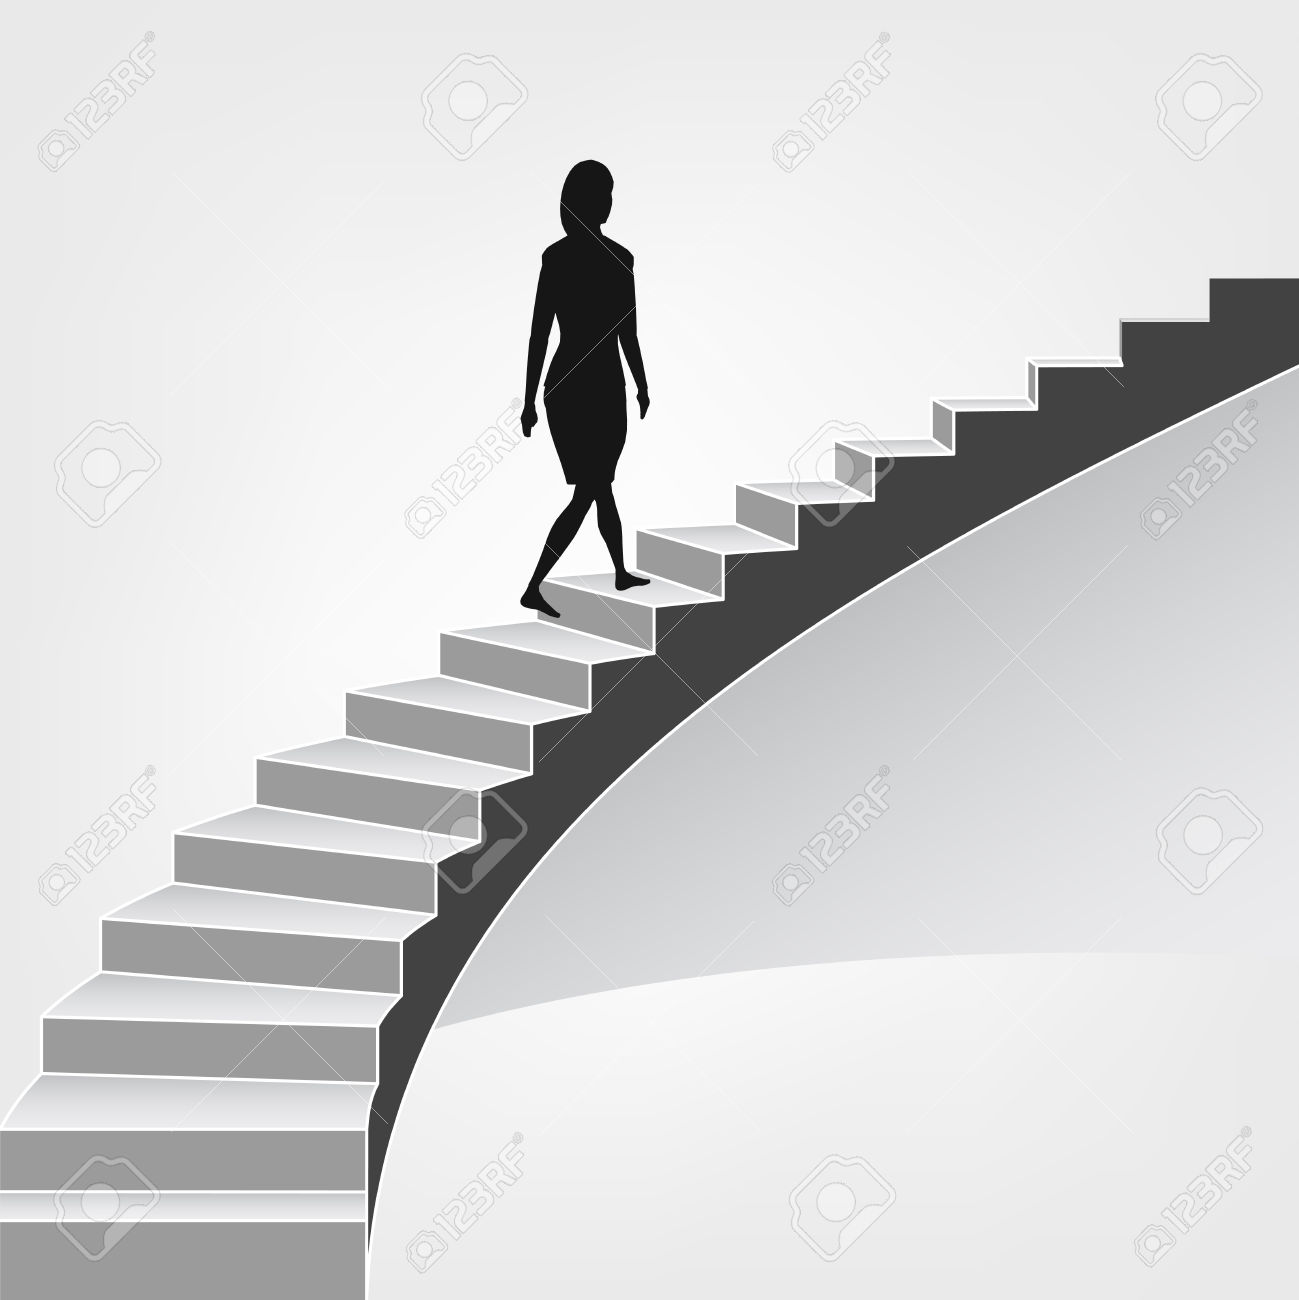 Woman clipart climbing stair Cliparts Illustrations 874 Stock climbing